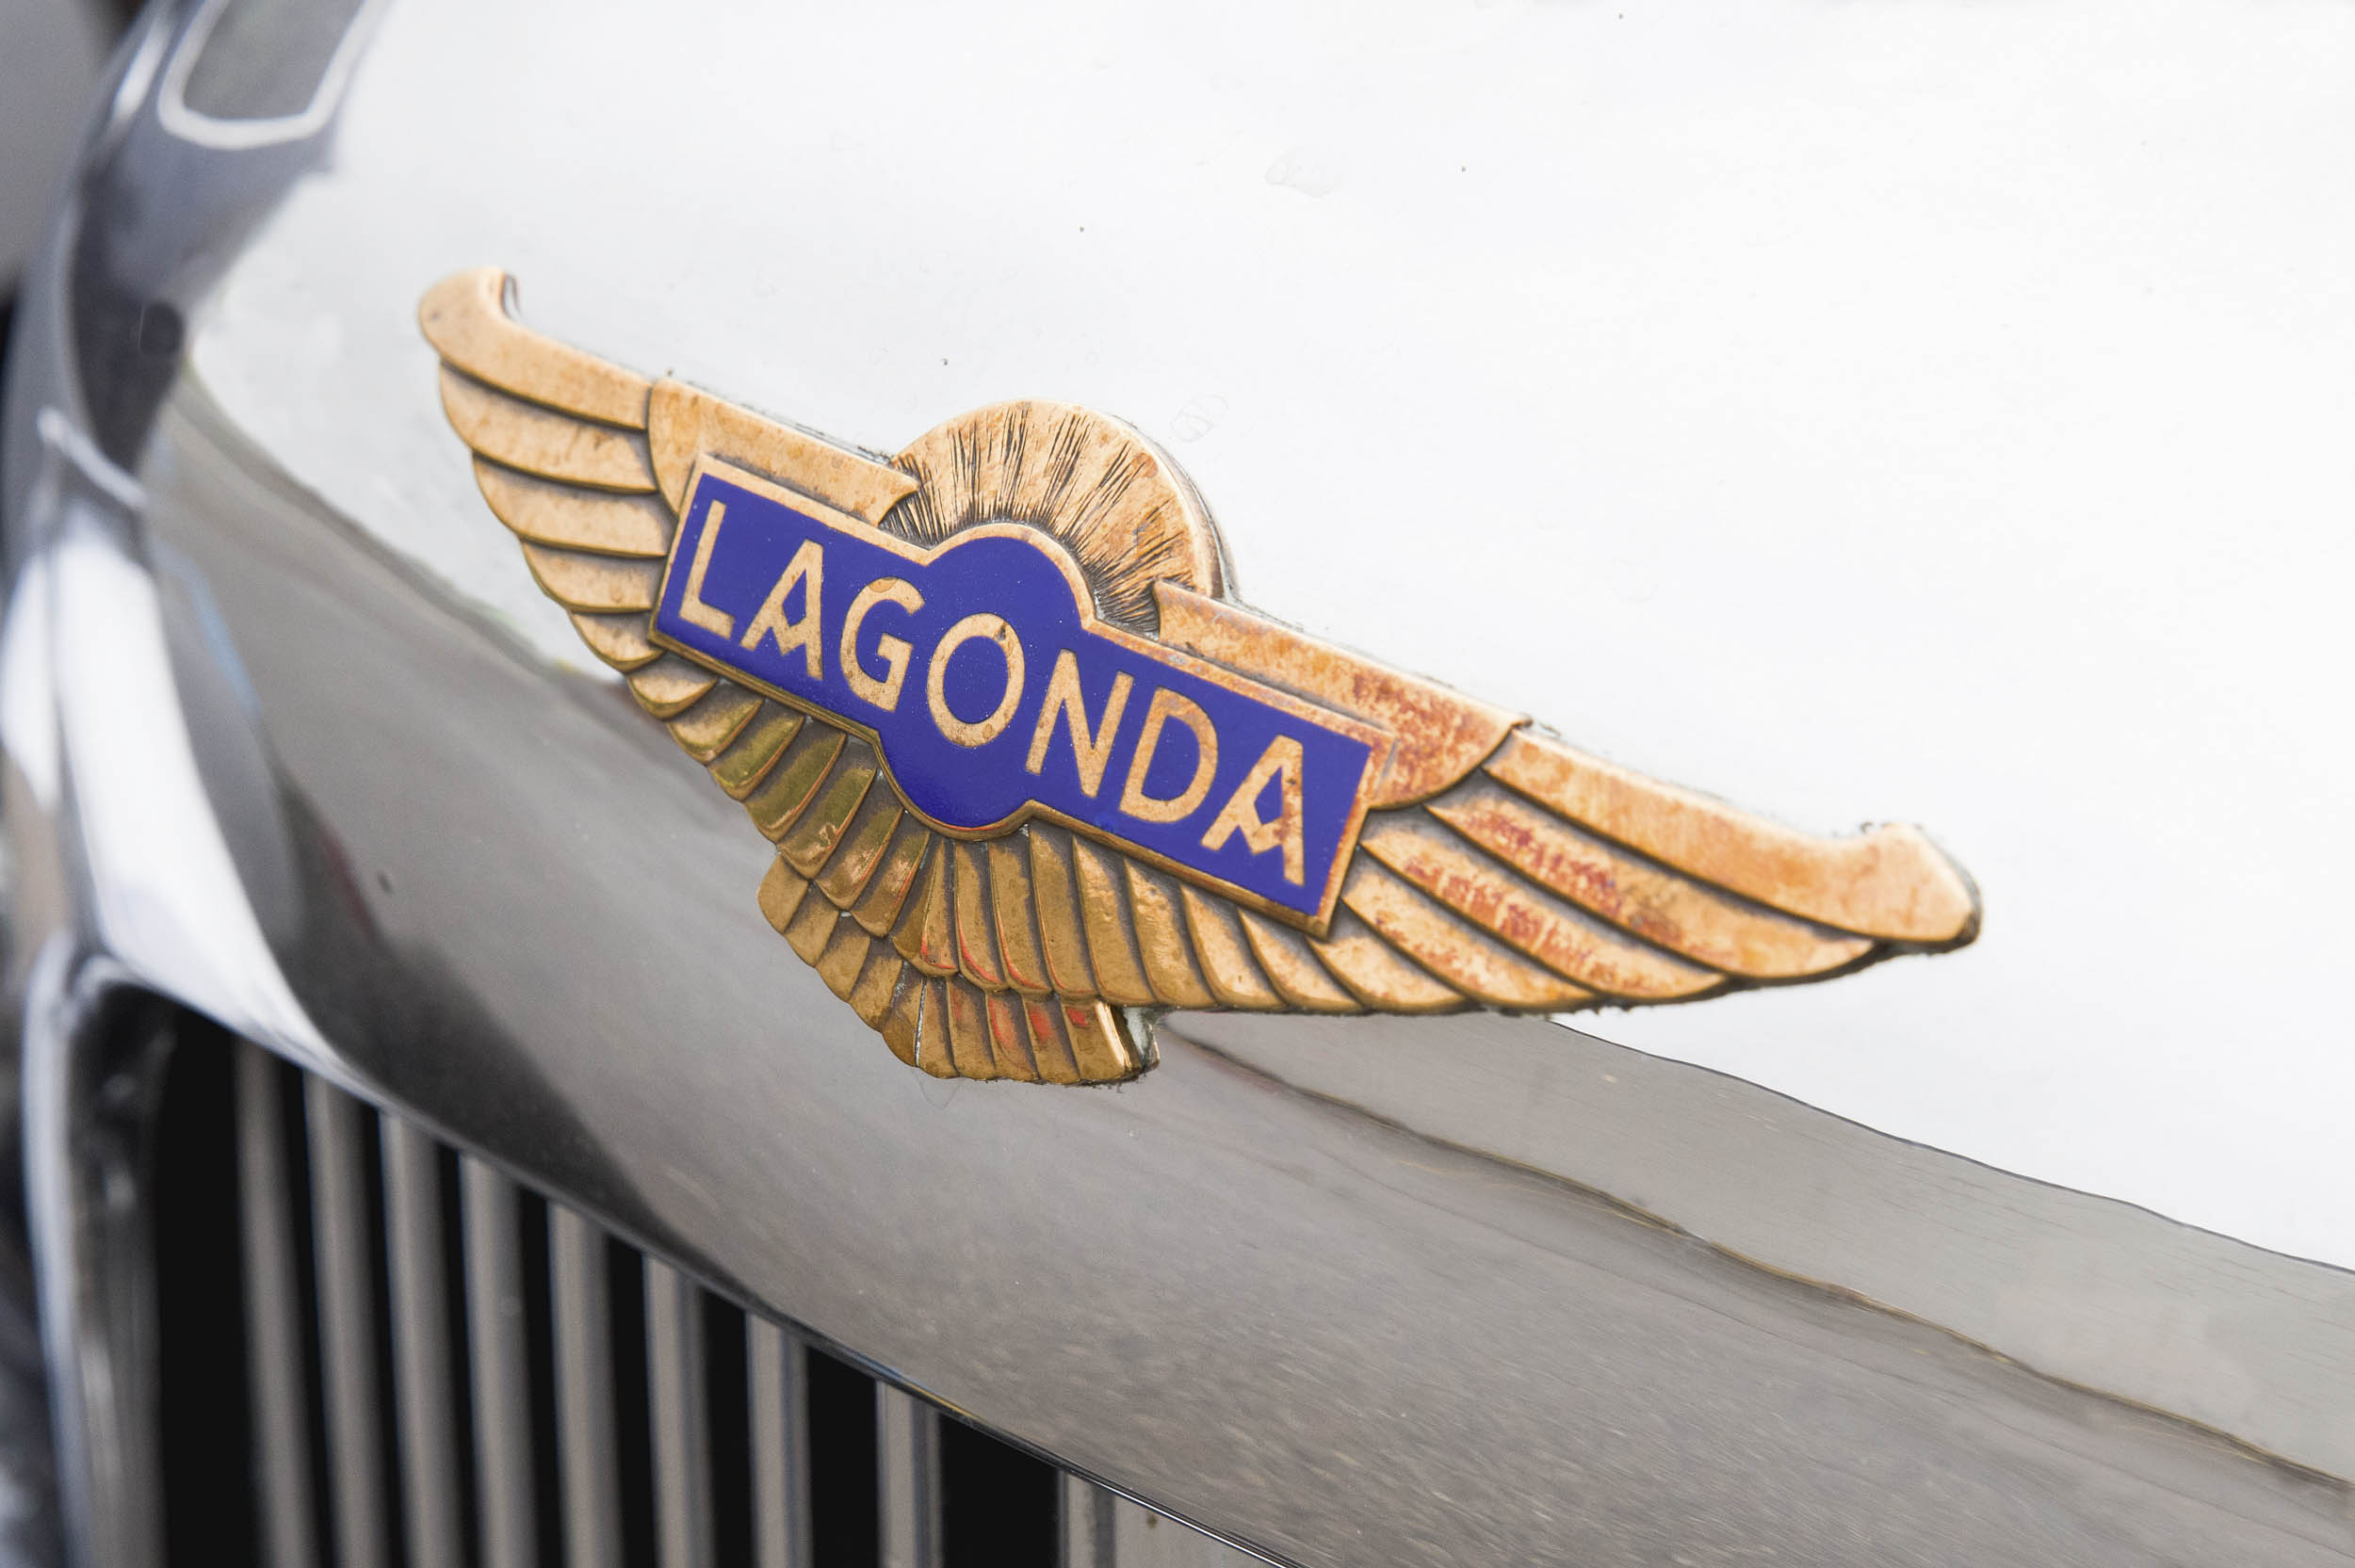 The Lagonda badge suggests the marque's Native American connection.